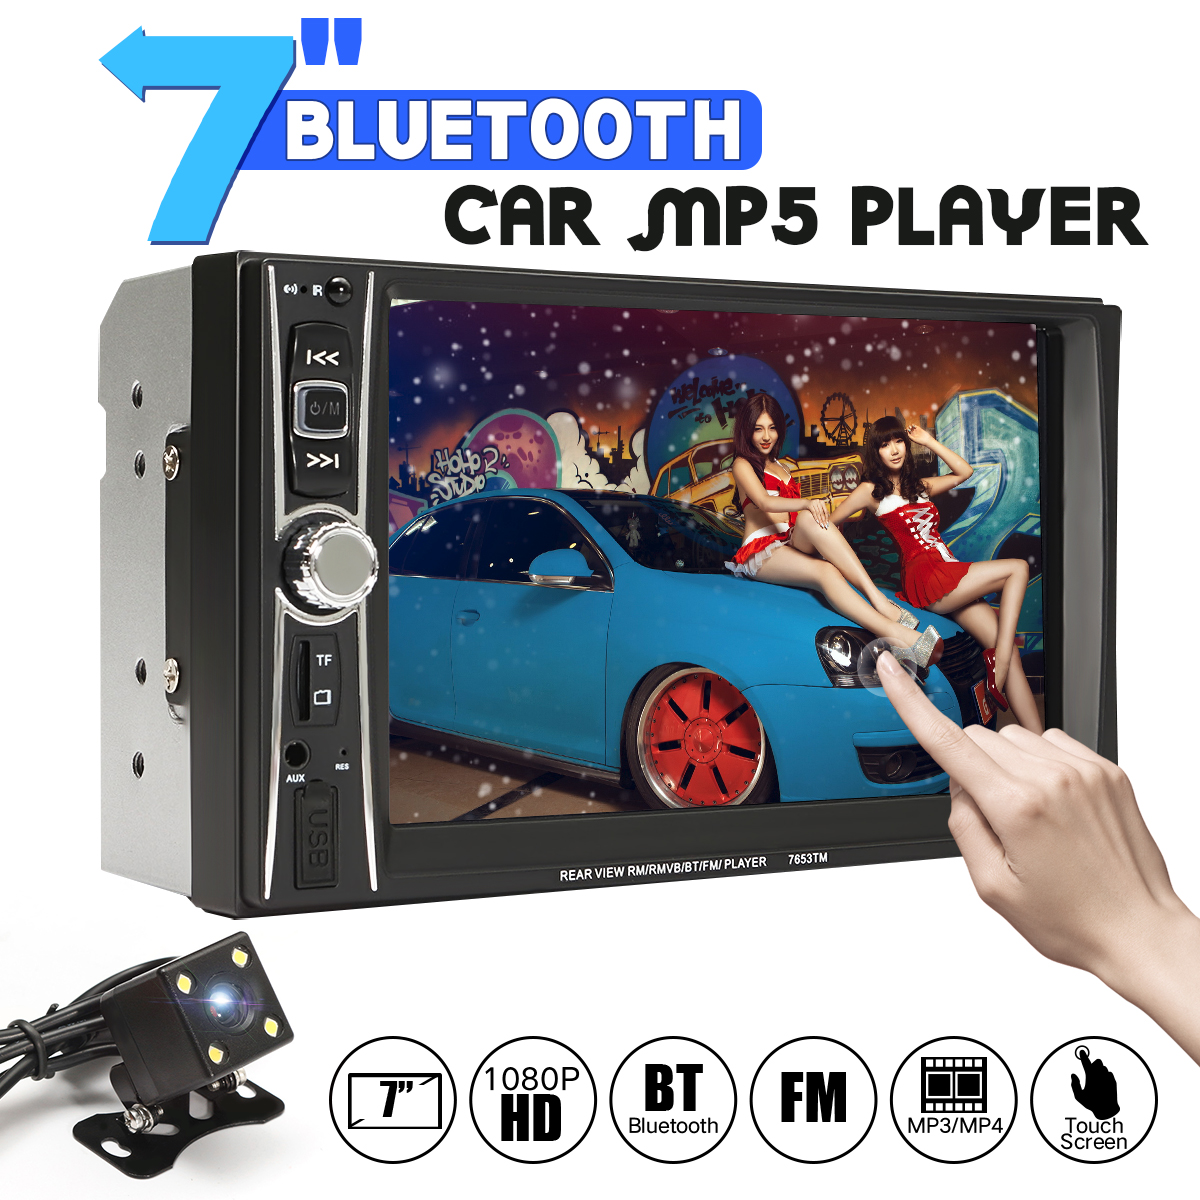 HD 1080P 7 Inch Bluetooth Car Radio 2 Din In Dash Touchscreen Auto Audio Player MP5 Player Rear View Camera Remote Control new 7 inch 2din bluetooth car radio video mp5 player auto radio fm 18 channel hd 1080p in dash remote control rear view camera